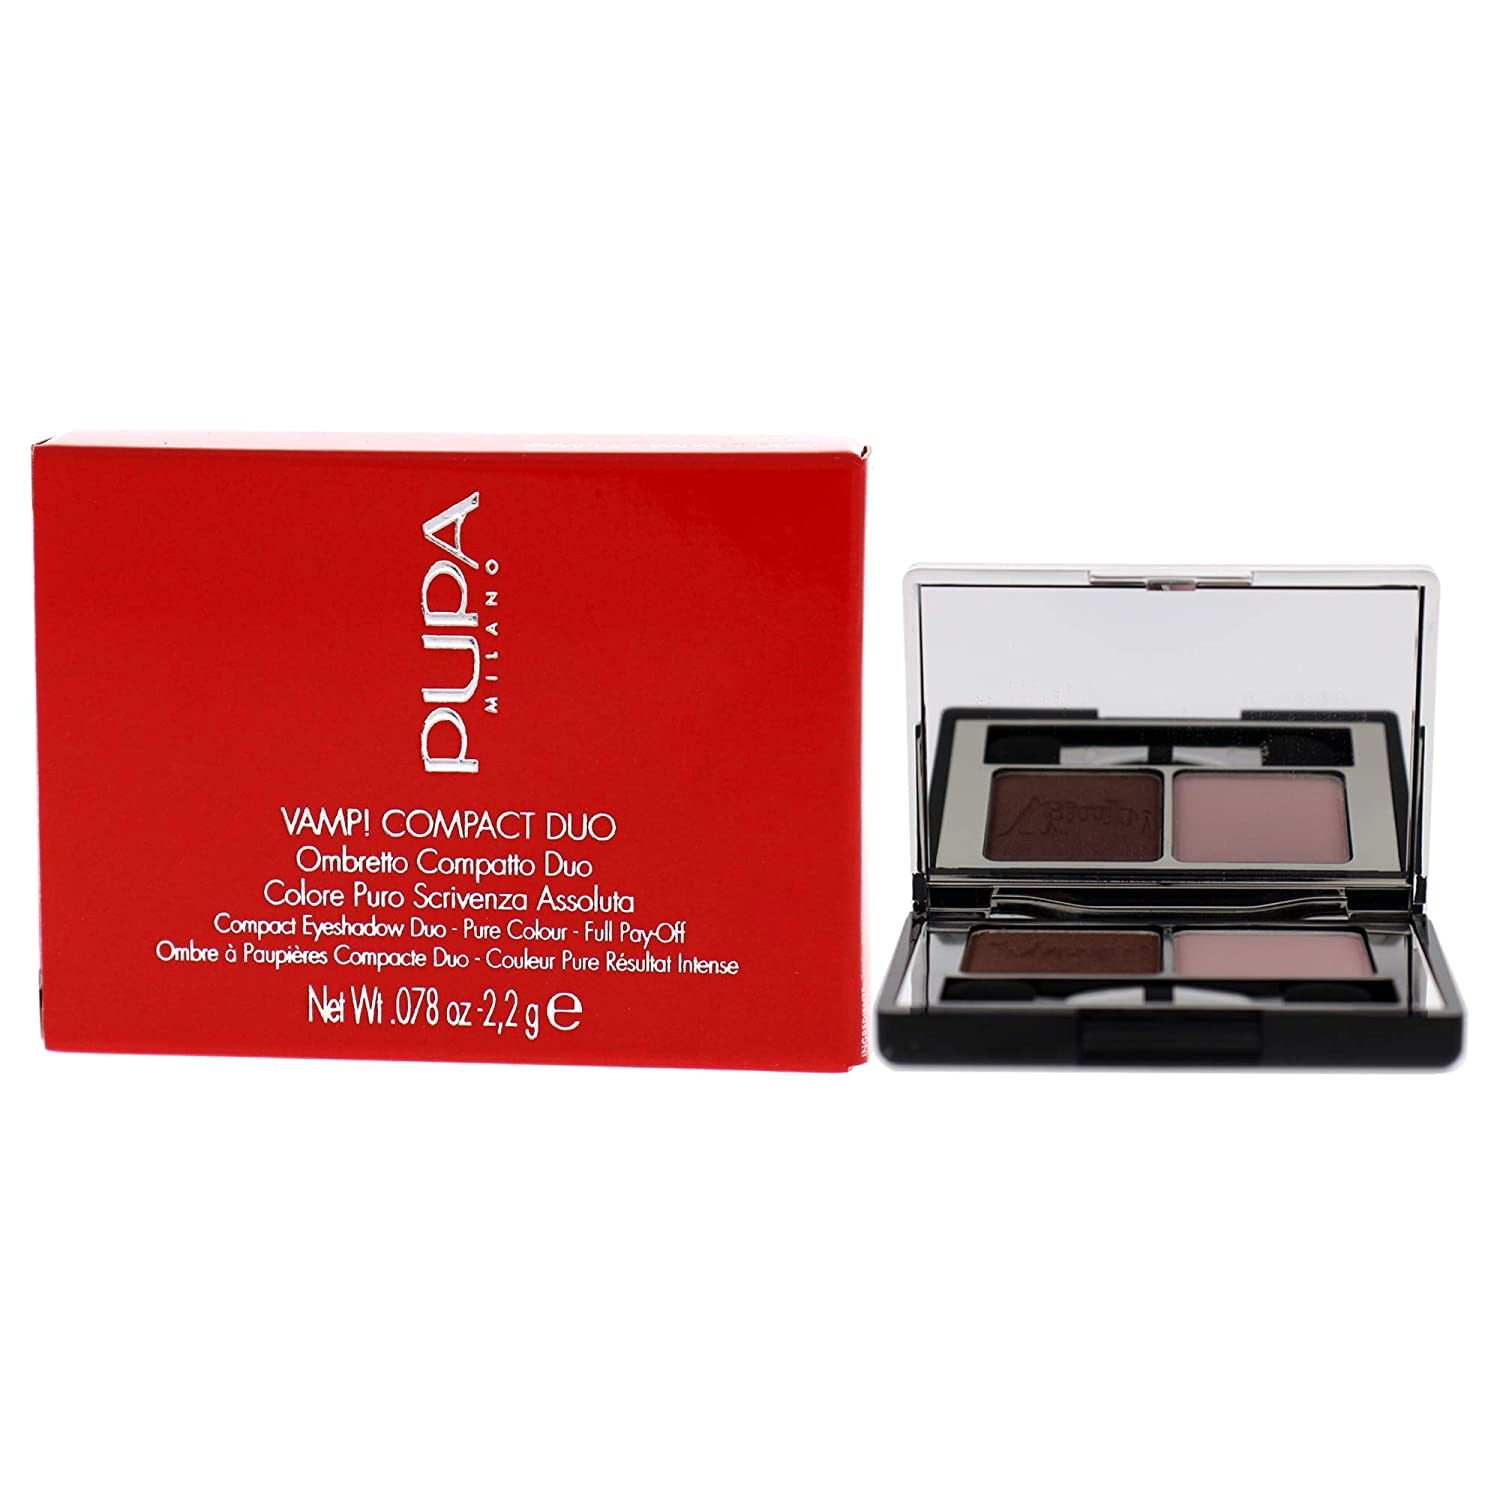 Pupa Milano Vamp! Compact Duo Eyeshadow – For Pure Color Payoff – Double Palette – High Concentration of Pigments and Comfortable Texture – 003 Soft Mauve – 0.078 Oz